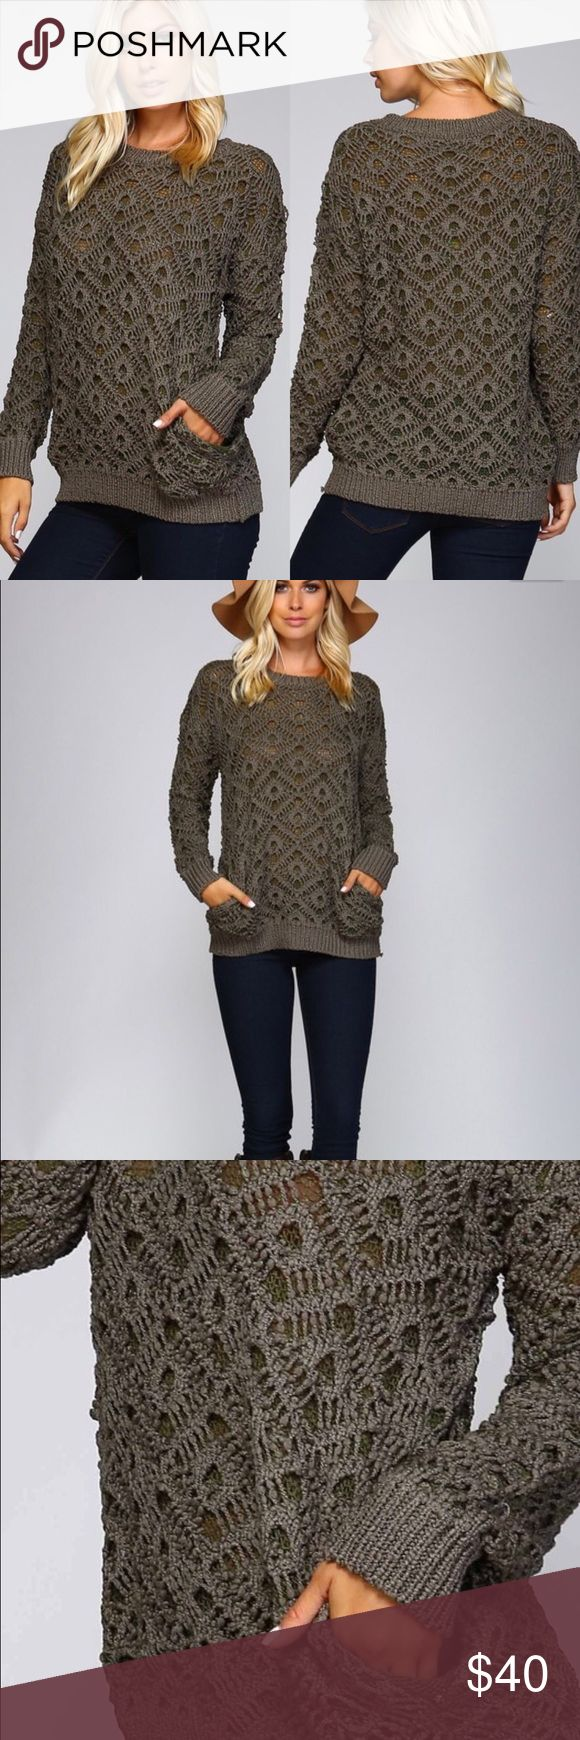 NEW Olive double link sweater with pockets Double chain crochet sweater with pockets in Olive. 65% cotton 35% polyester. Model is wearing a size small. Sweaters Crew & Scoop Necks